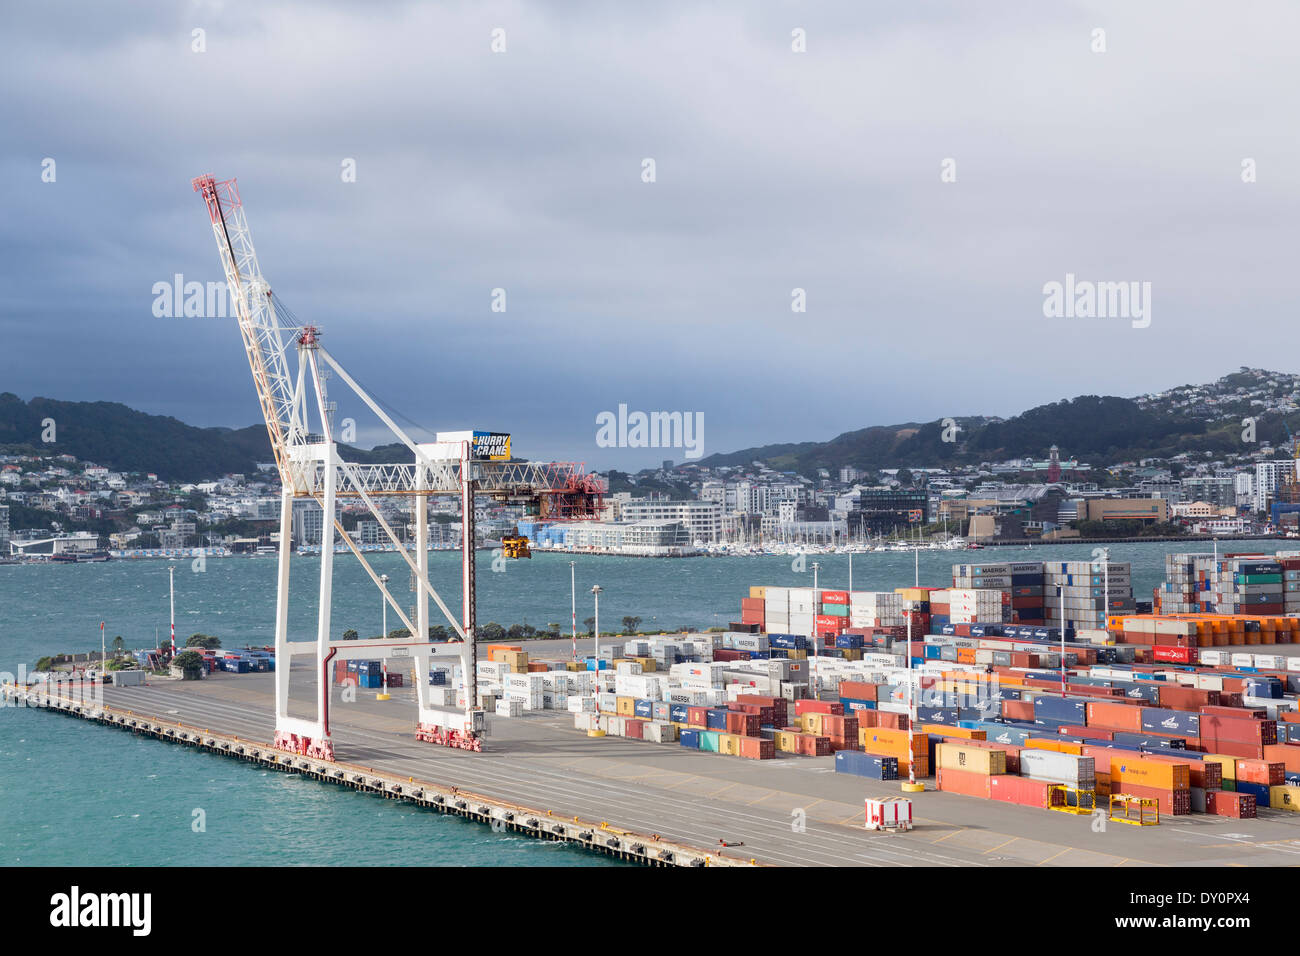 Wellington, New Zealand - Dockside crane and shipping containers in the port - Stock Image